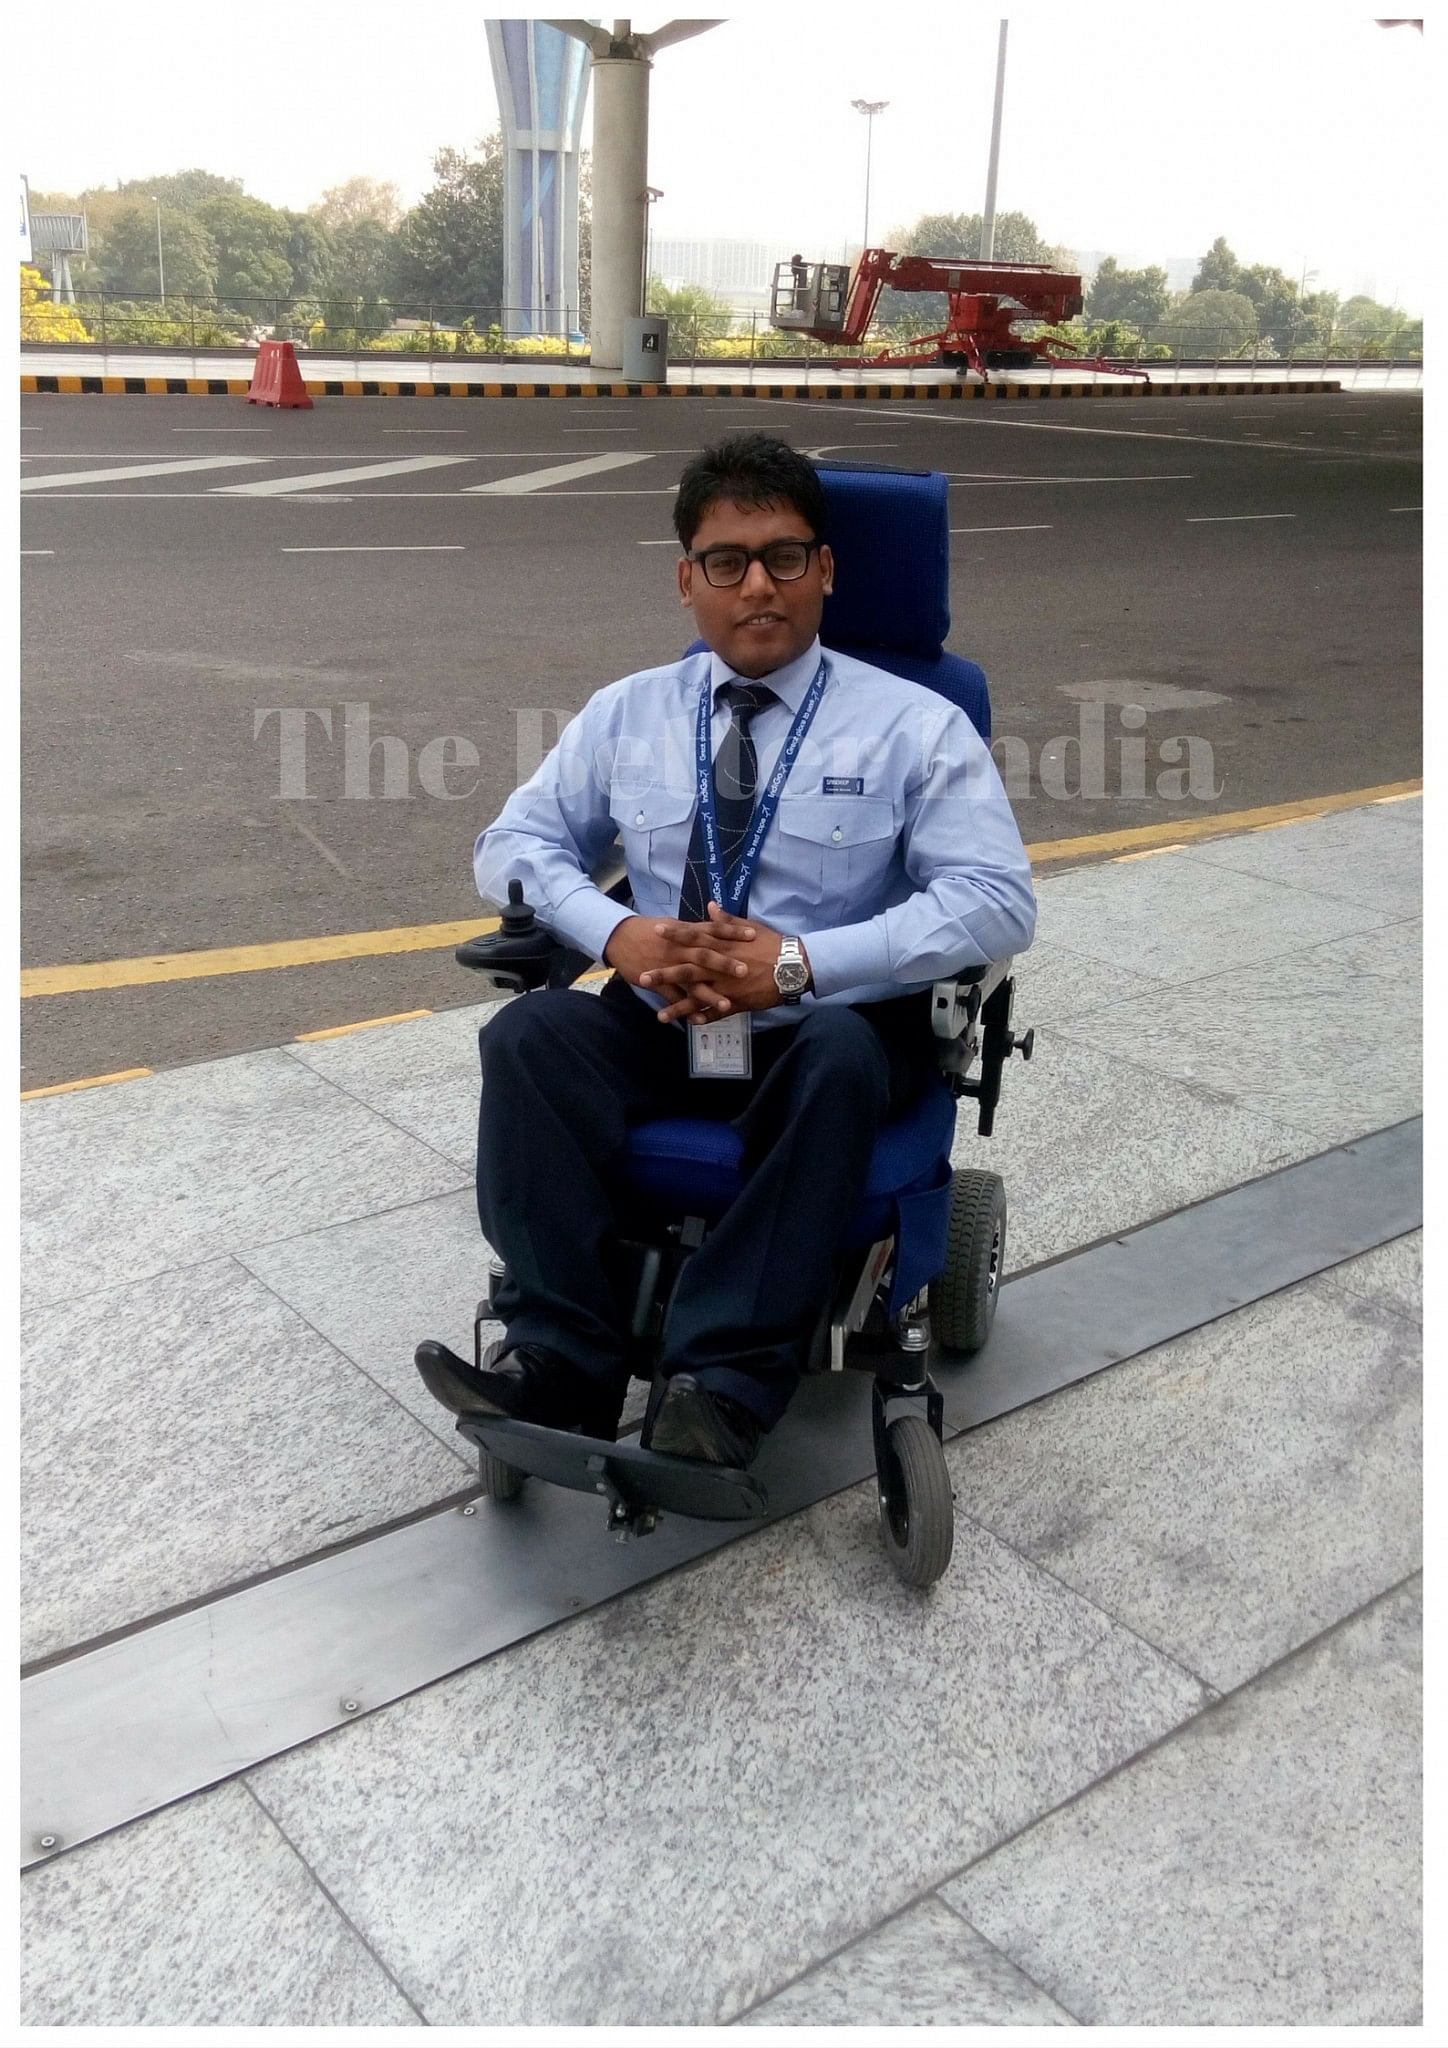 Sandeep became paraplegic at a young age of seven.